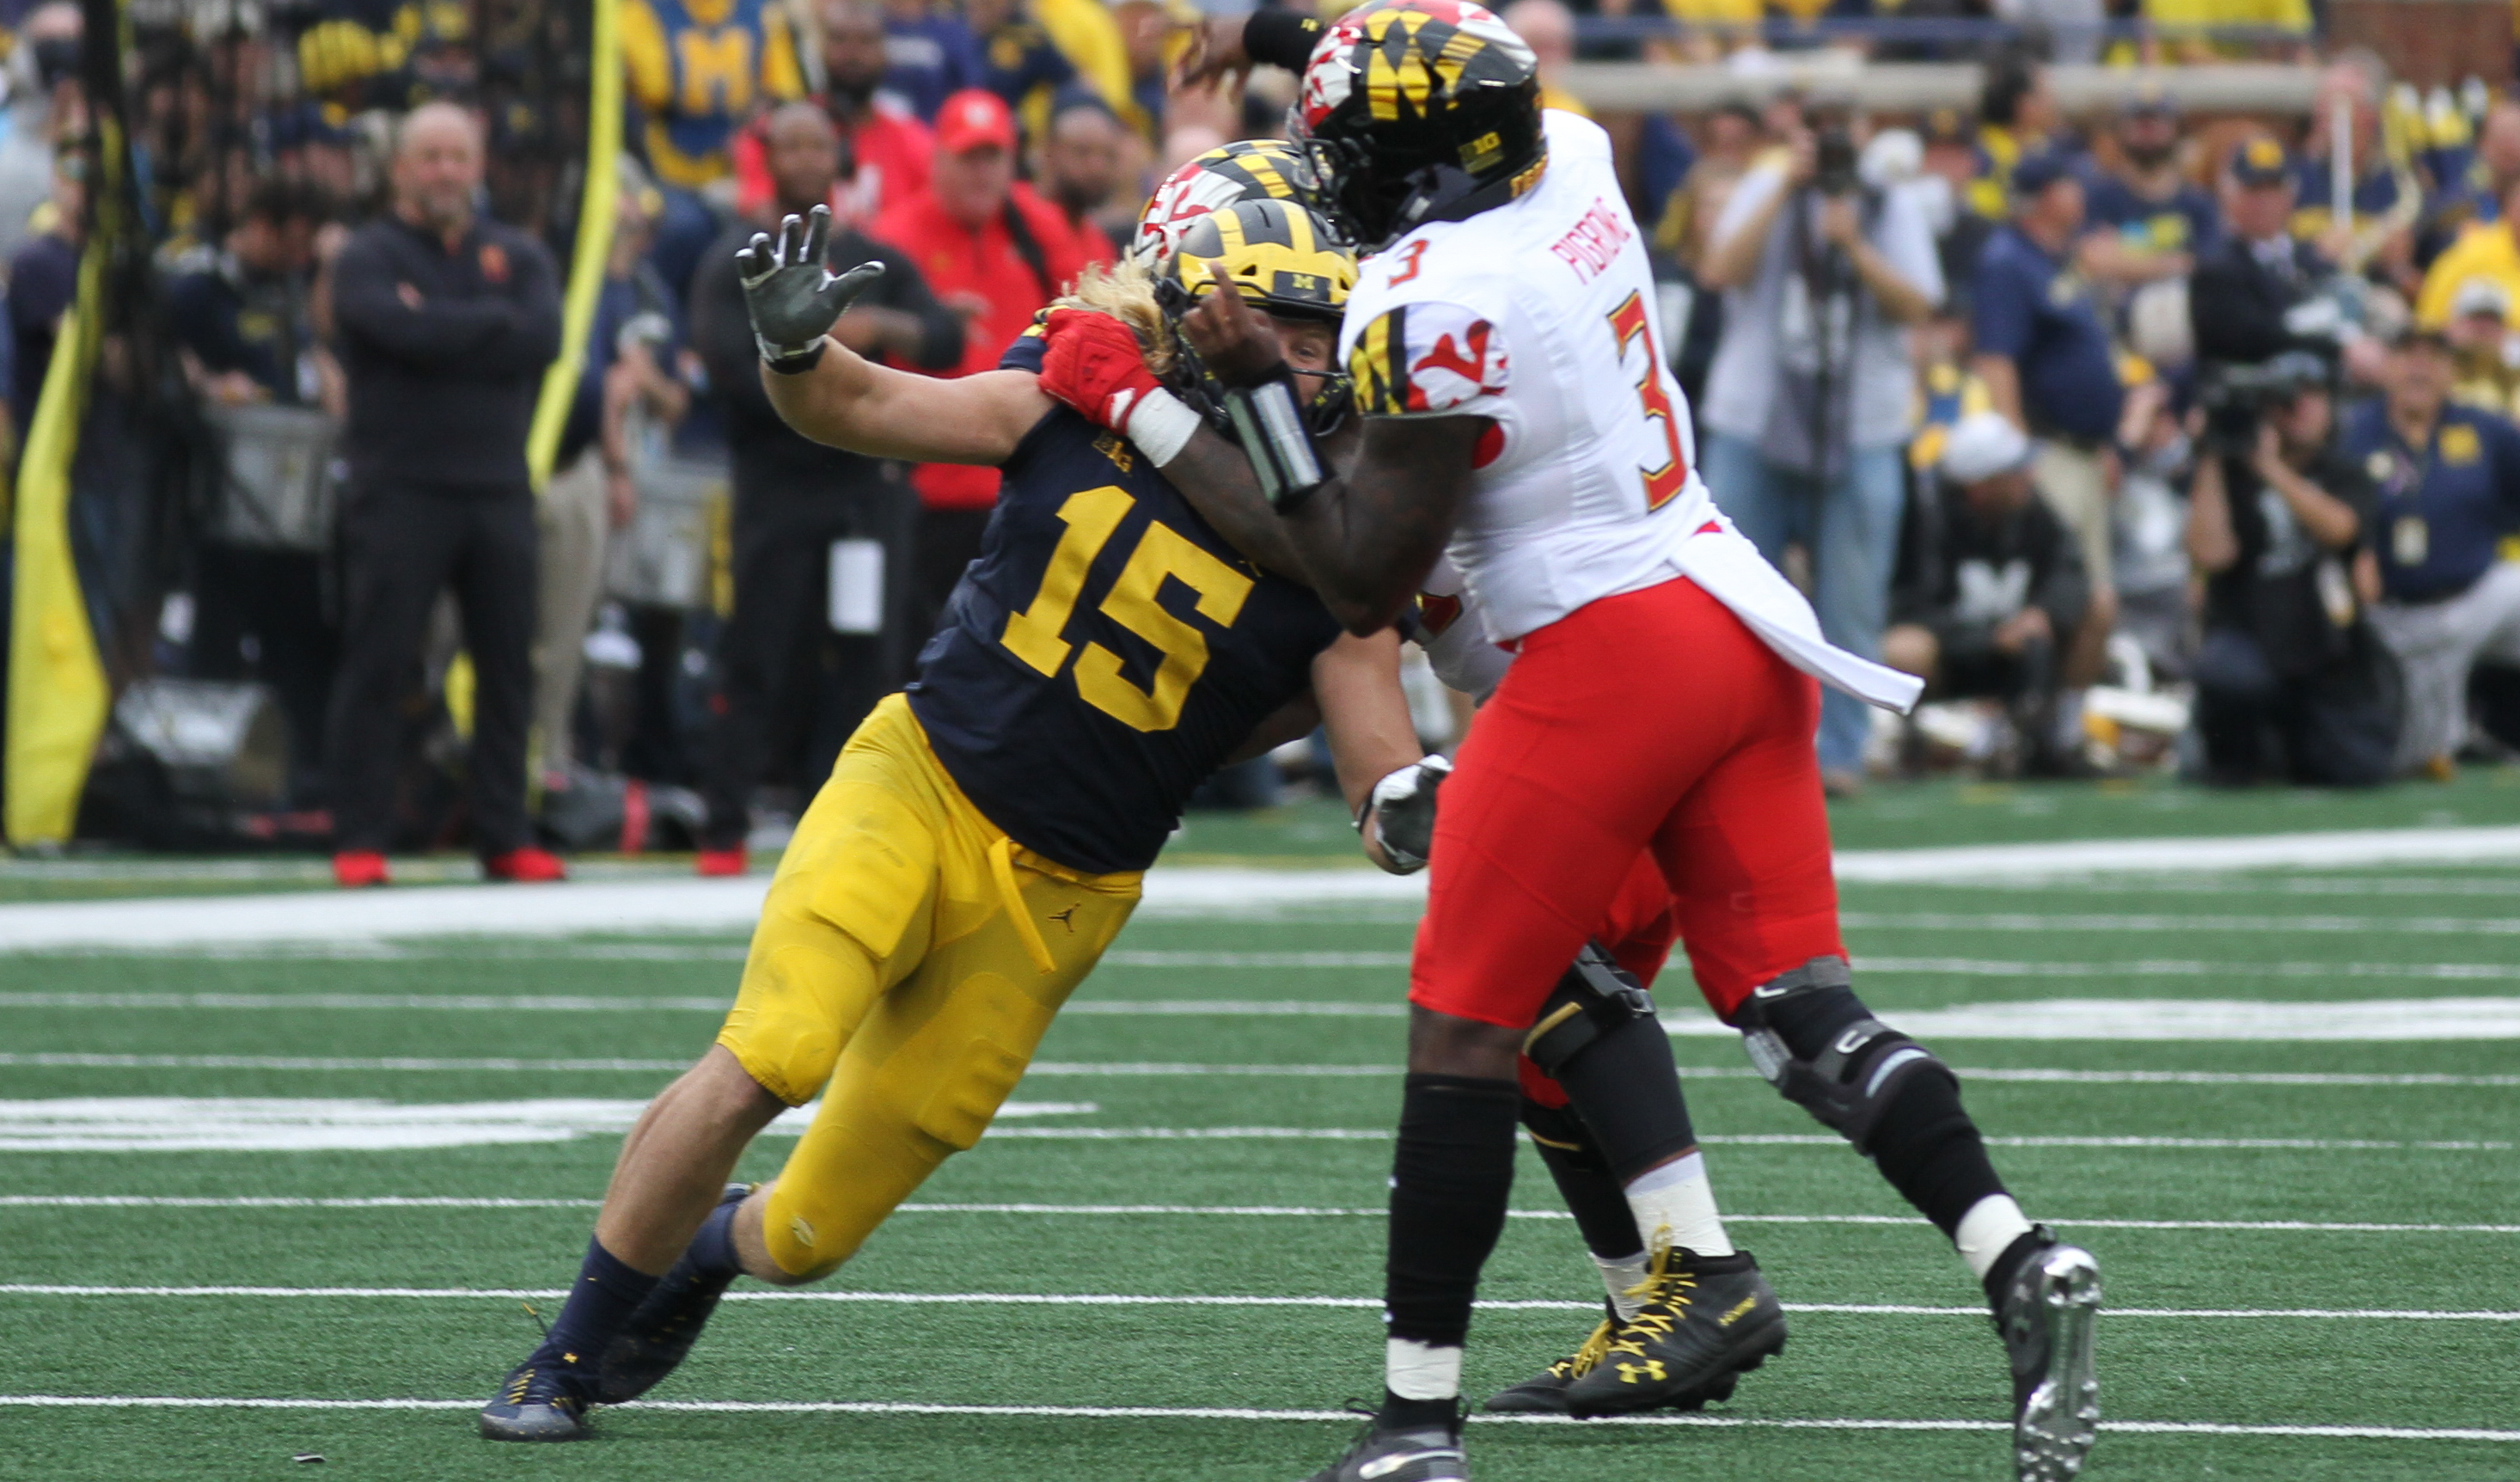 Chase Winovich getting held